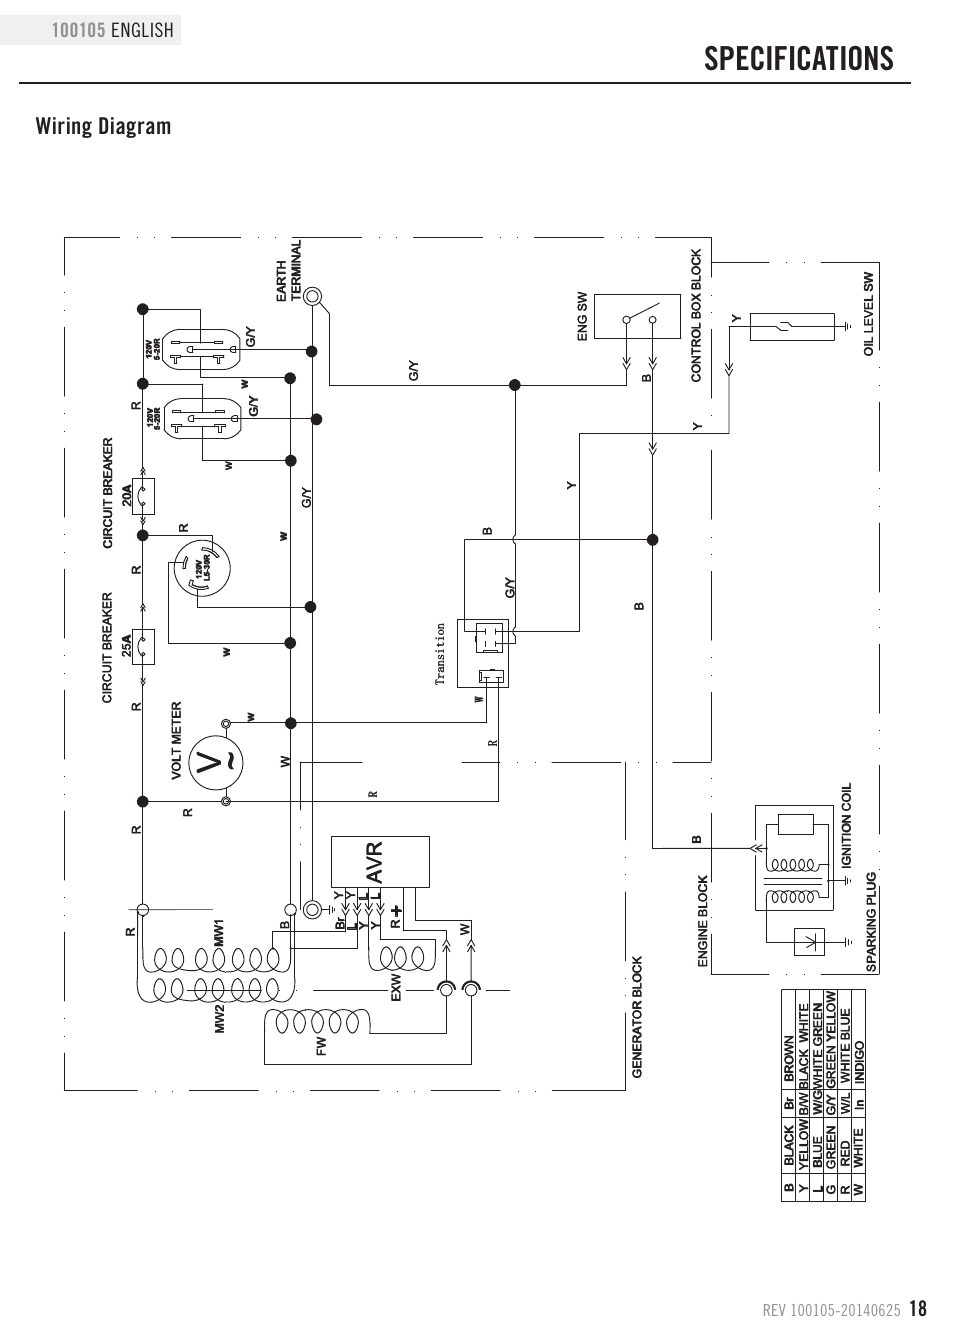 1995 Champion Wiring Diagram